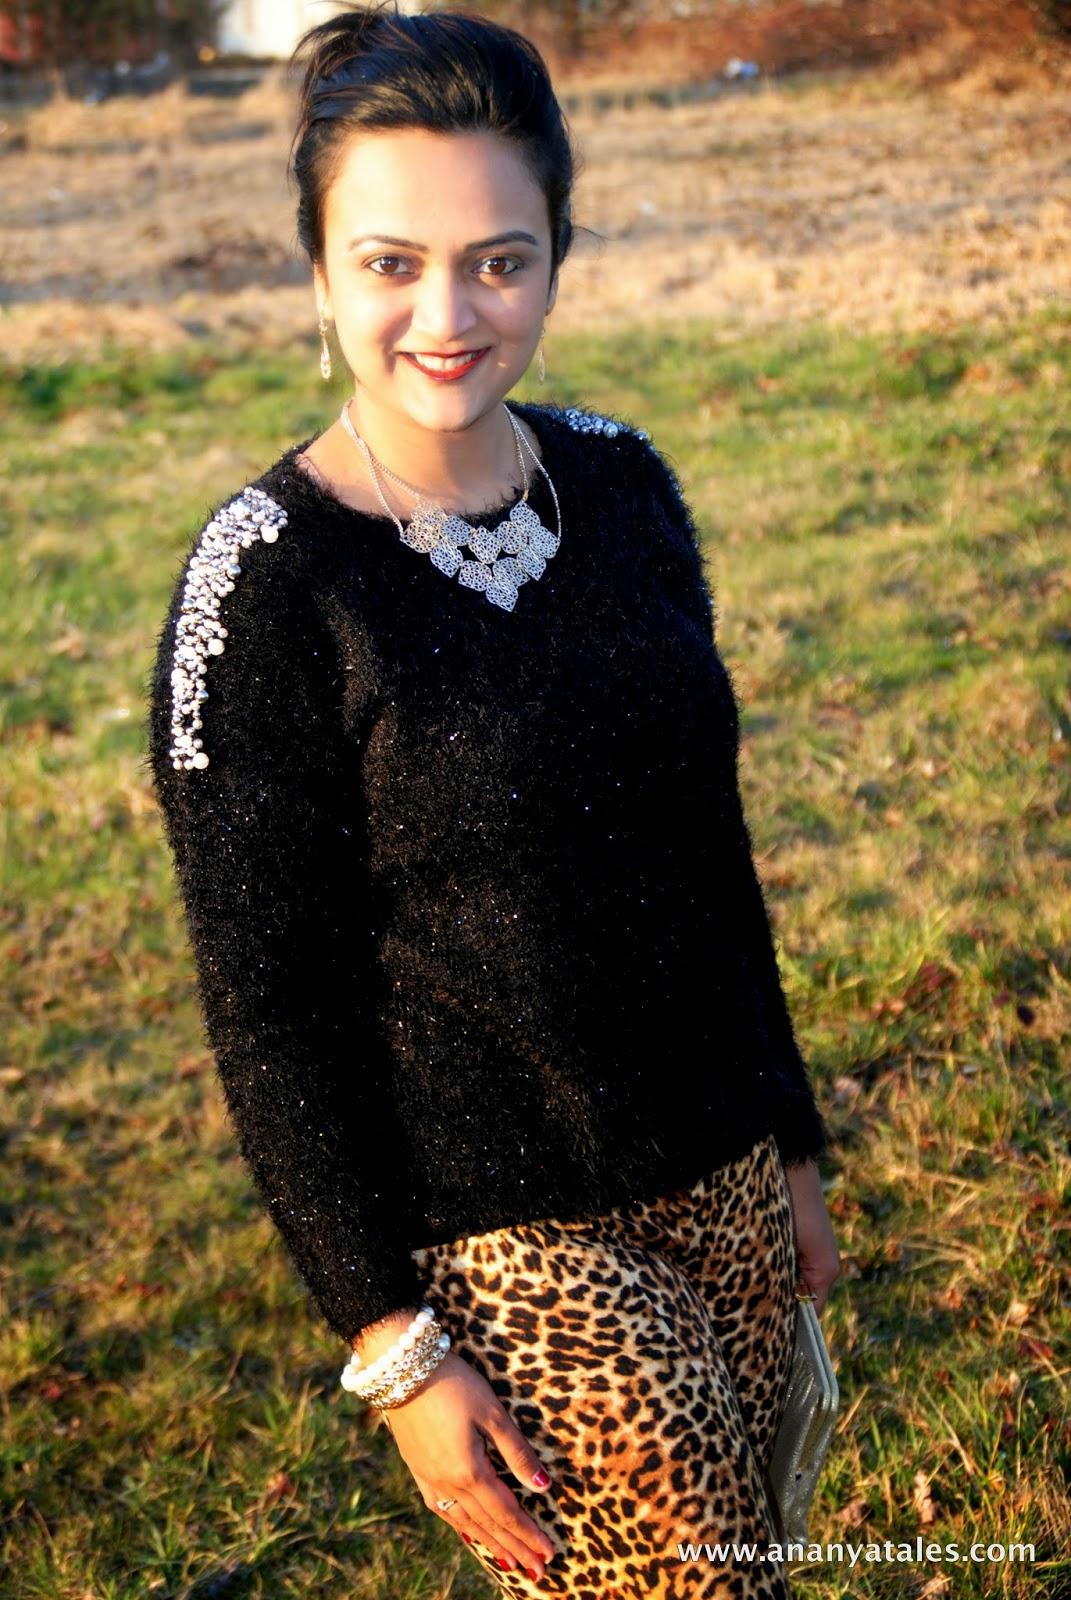 Leopard print, Tips to wear leopard prints, Animal prints, Indian fashion blogger in leopard prints